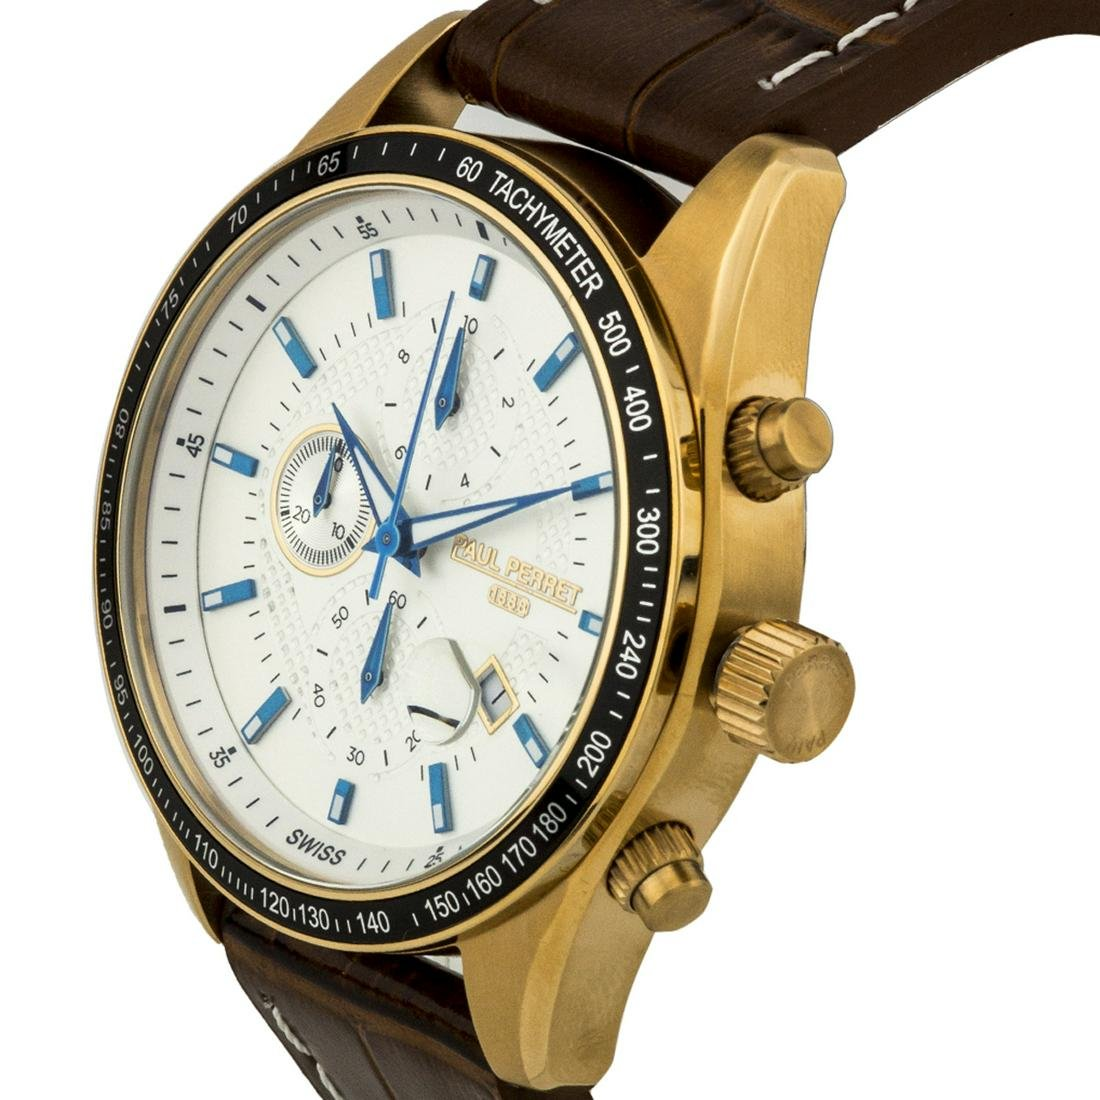 Men's Chronograph Watch Textured Leather Strap